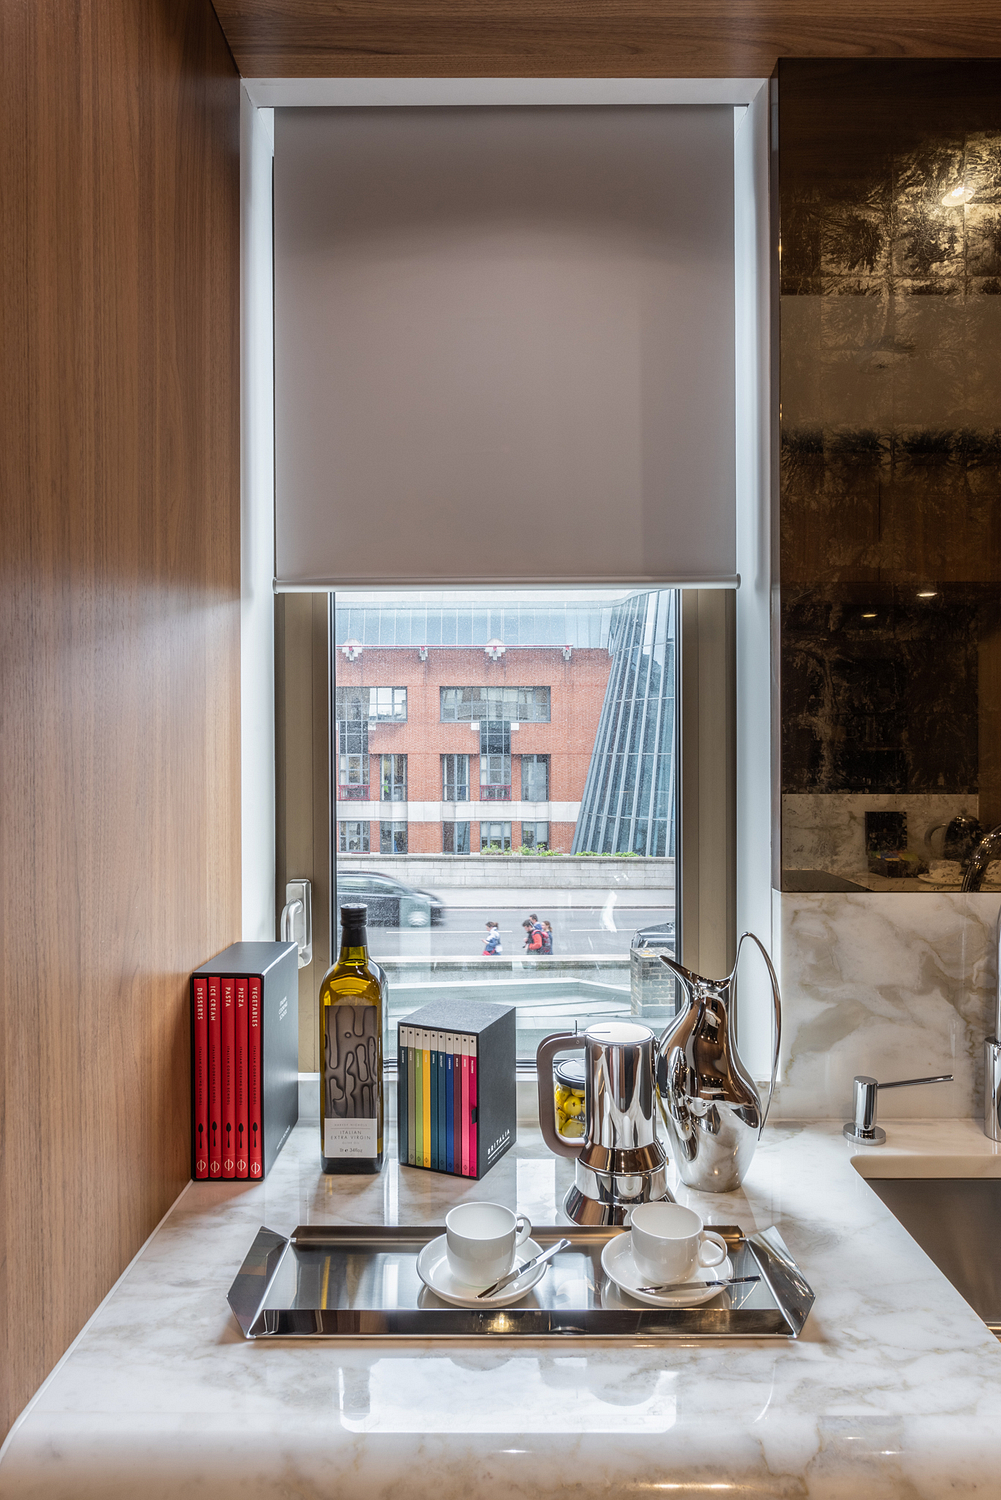 Kitchen detail with blind, London apartment